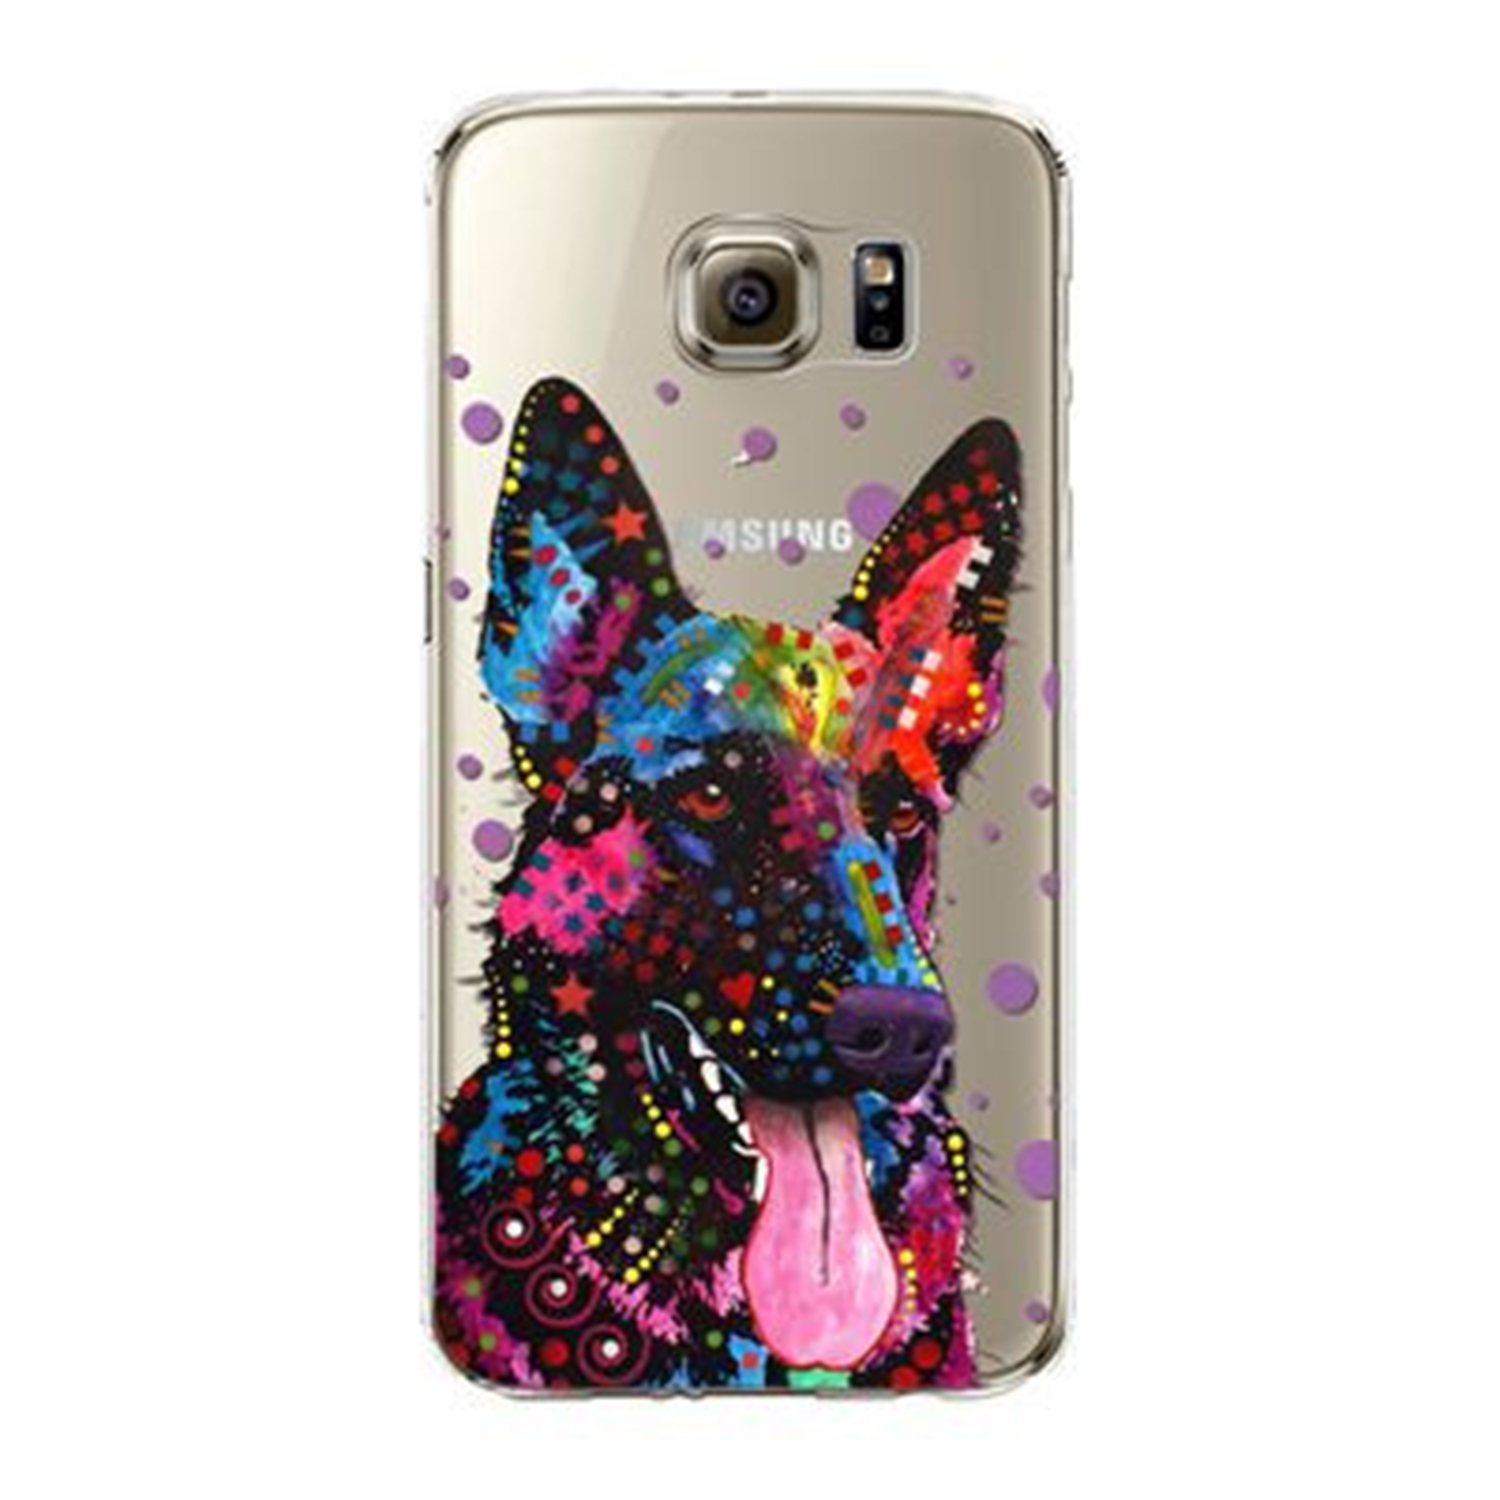 Kritzel Case Collection Galaxy S7 edge - Mod. #440